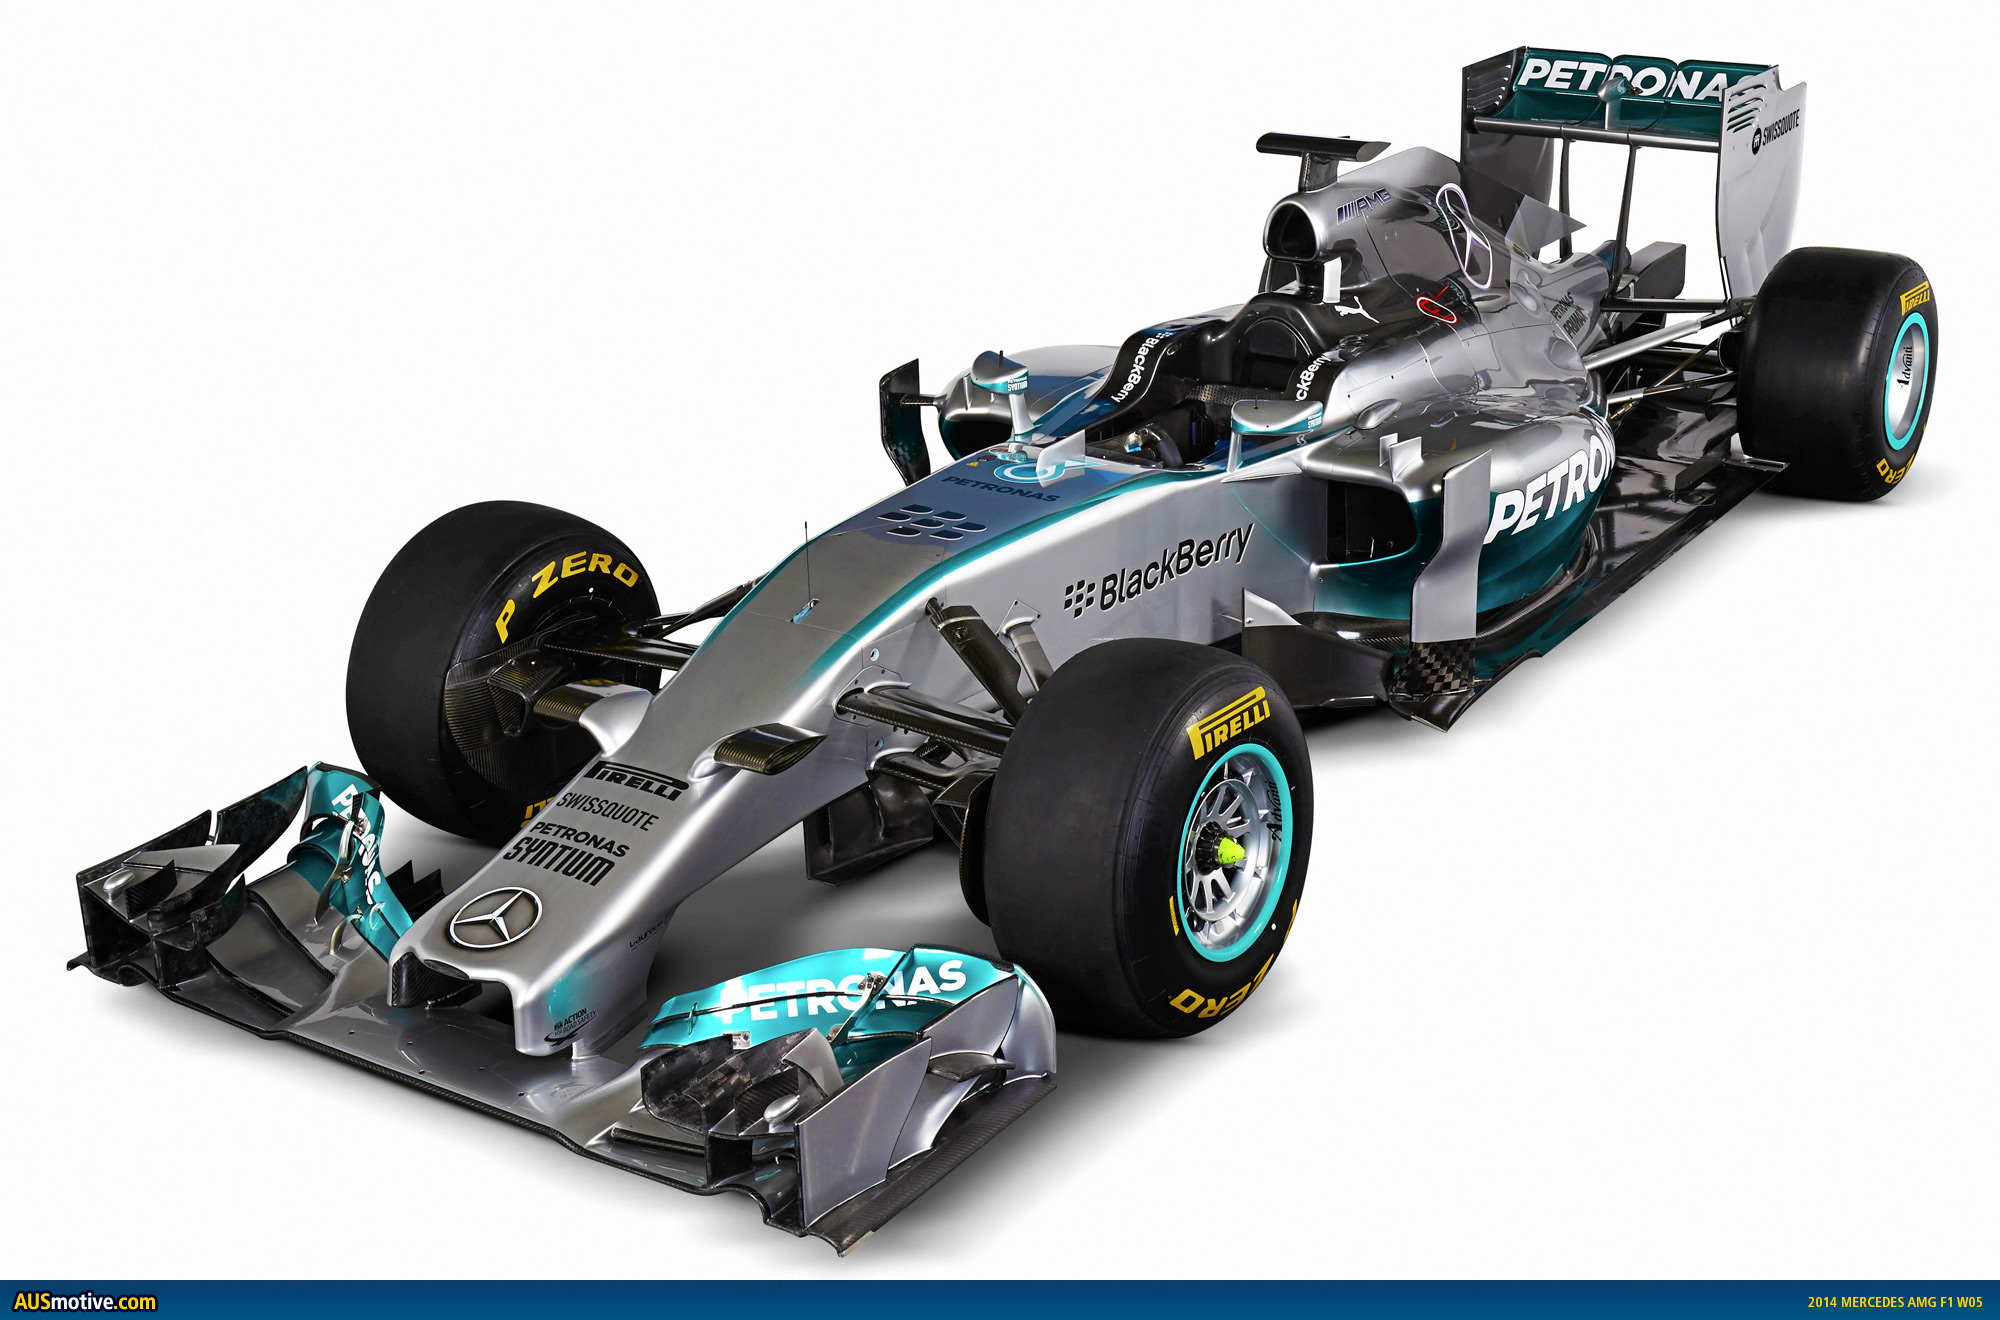 2014 mercedes amg f1 w05 revealed ForMercedes Benz F1